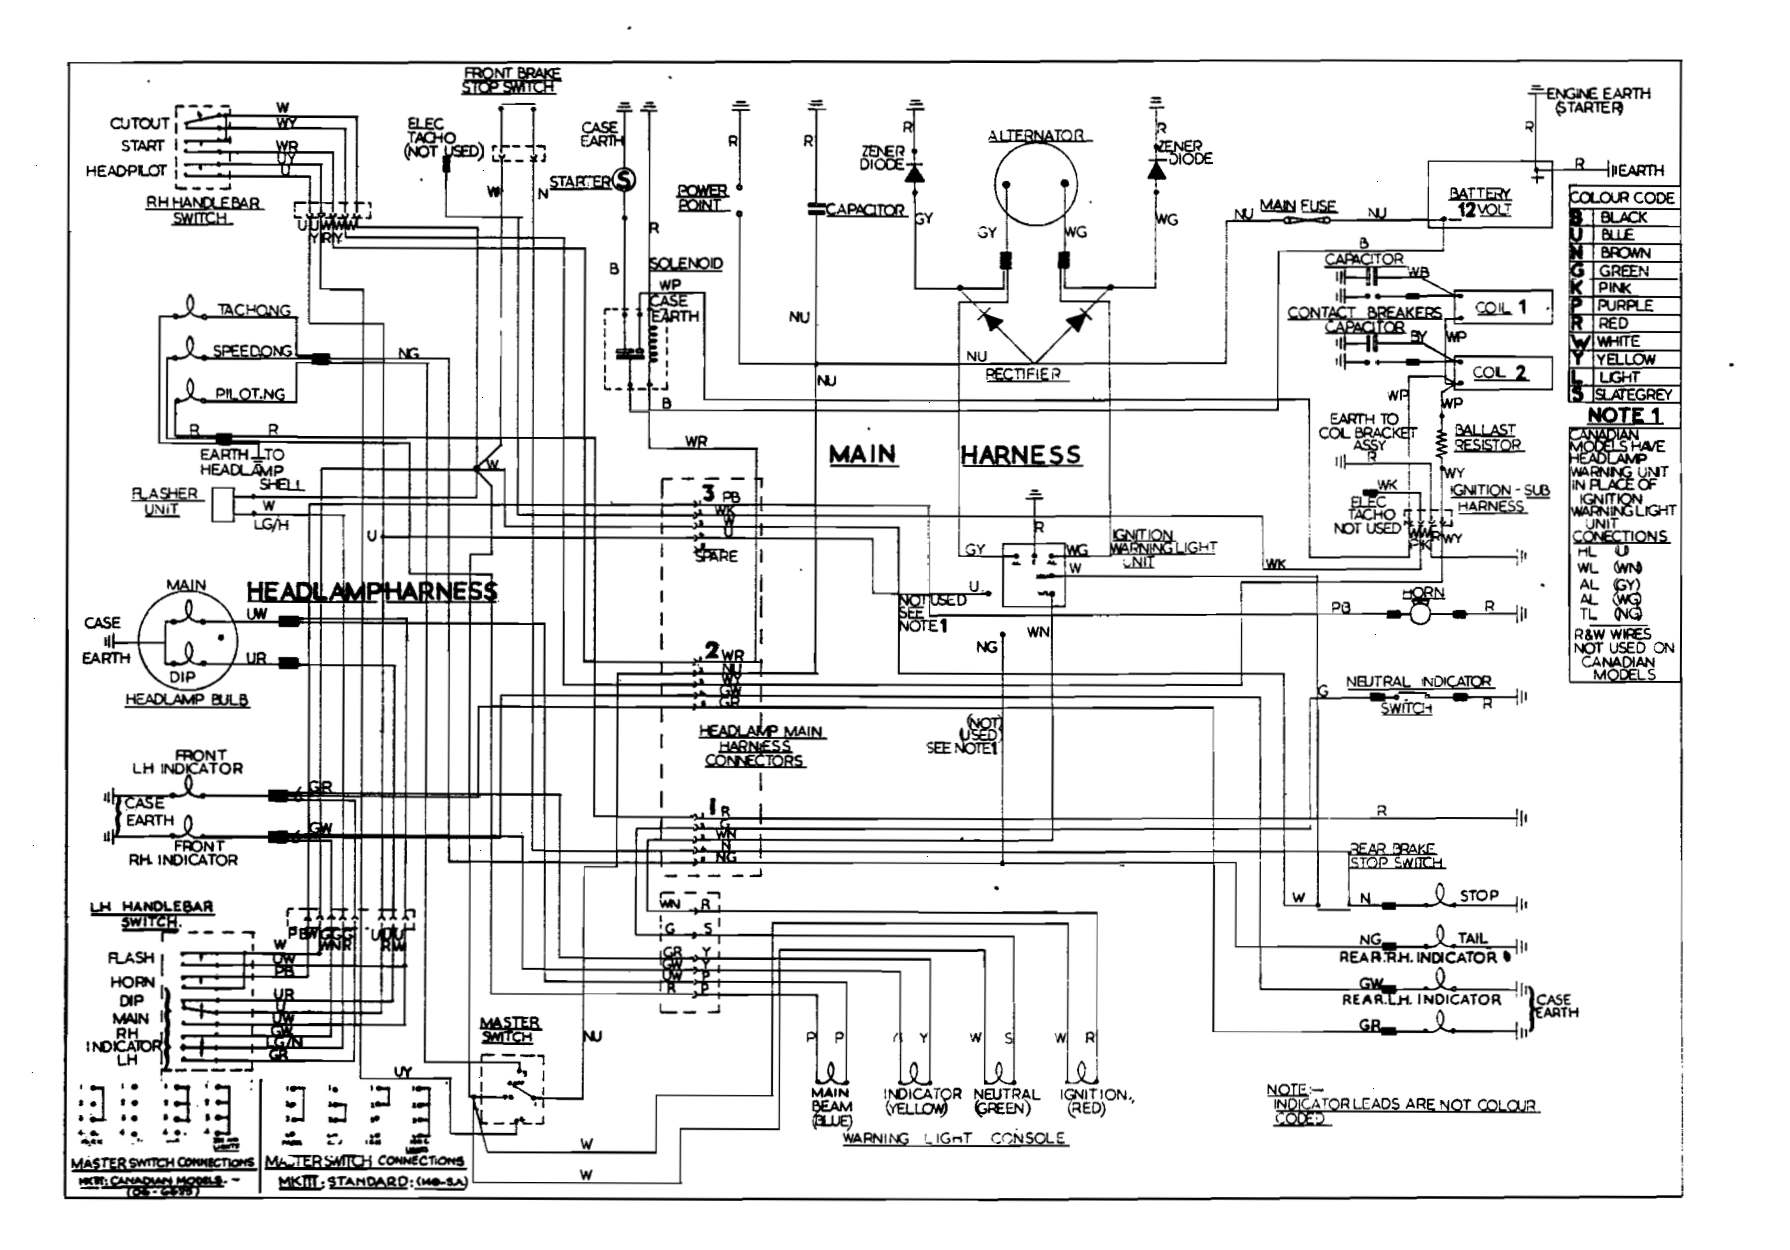 1967 jeepster commando wiring diagram jeepster commando wiring diagram | wiring diagram database 1975 norton commando wiring diagram